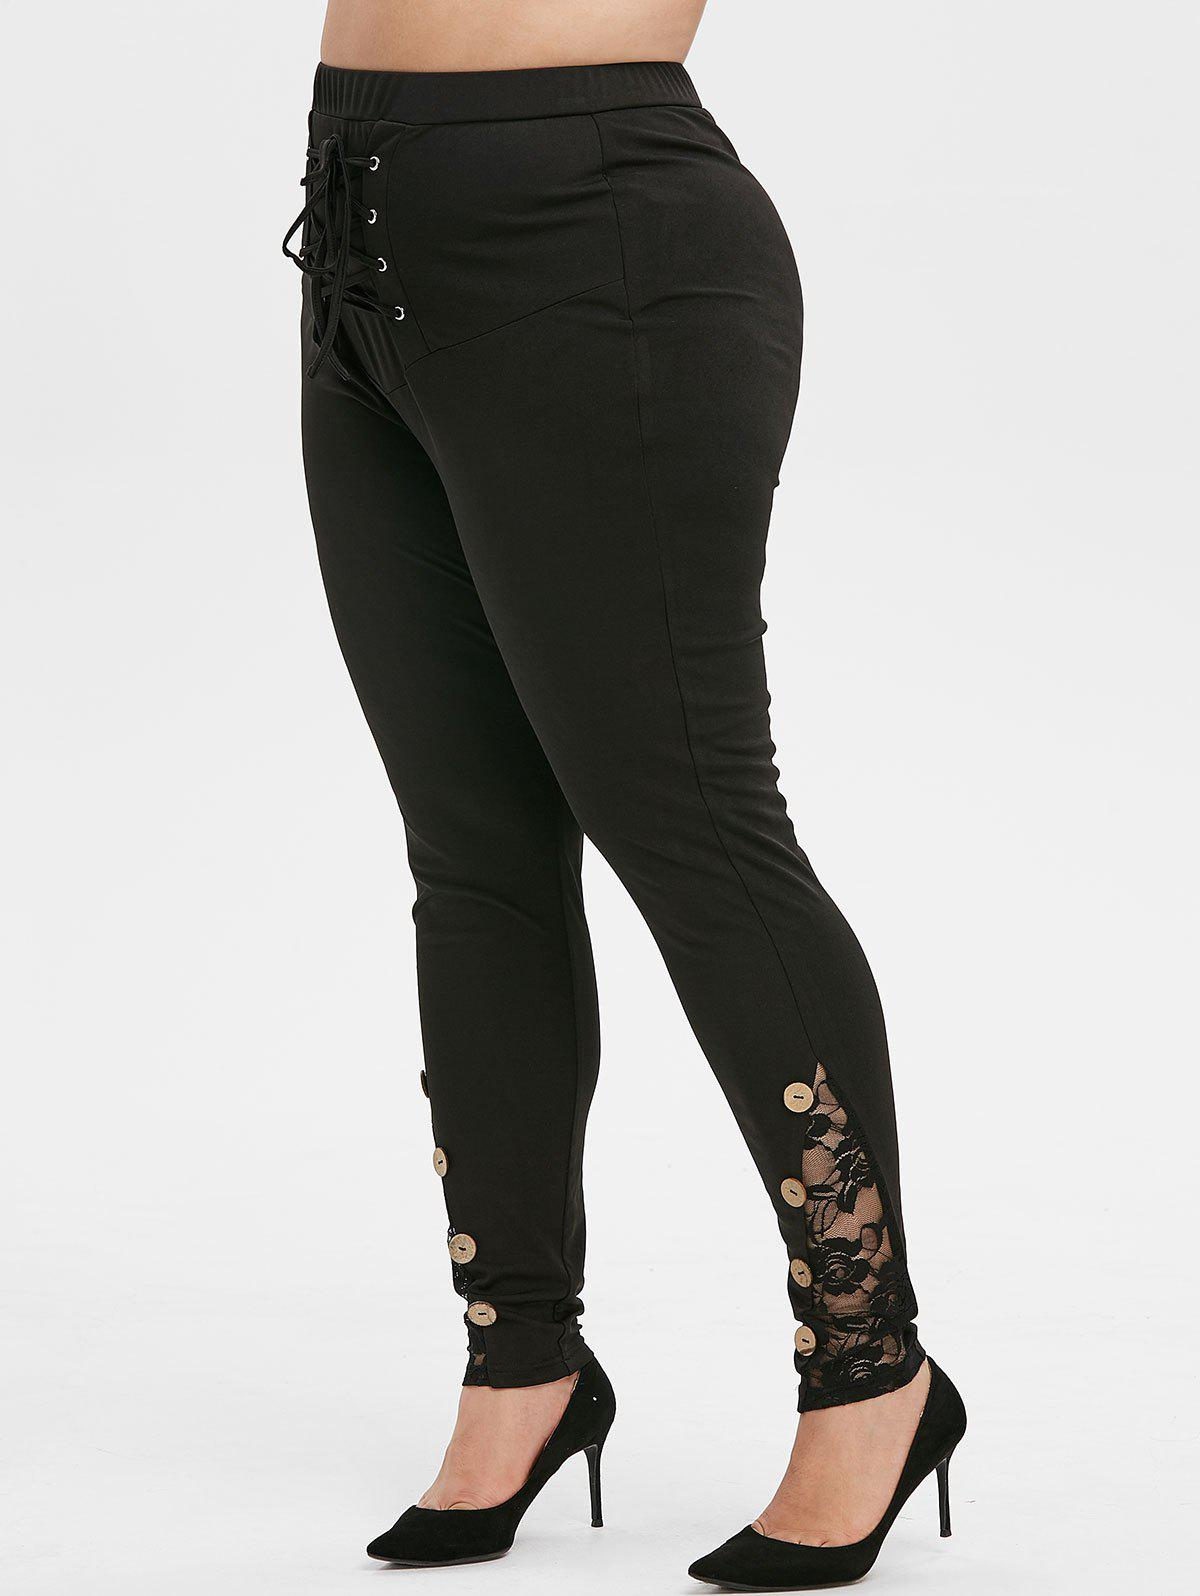 Plus Size High Rise Lace Up Boutons Skinny Leggings - Aurora Noir 5X